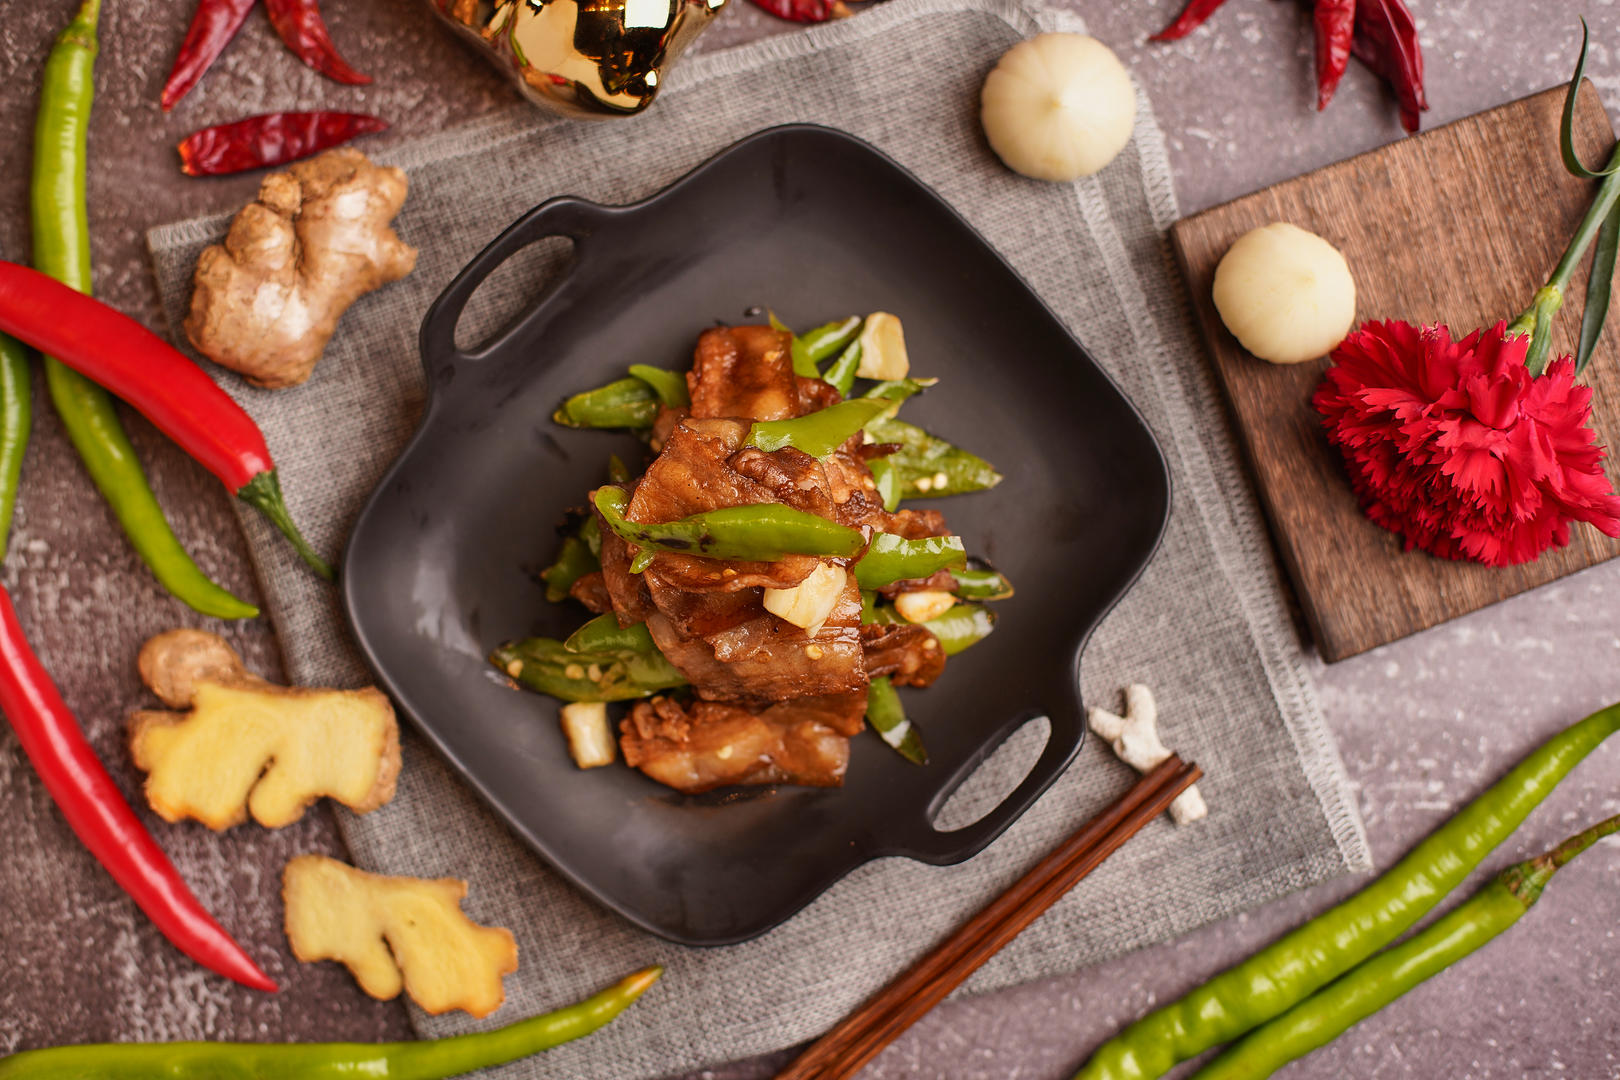 KICTU_LE_Enjoy 9 Courses Of Traditional Sichuan Cuisine